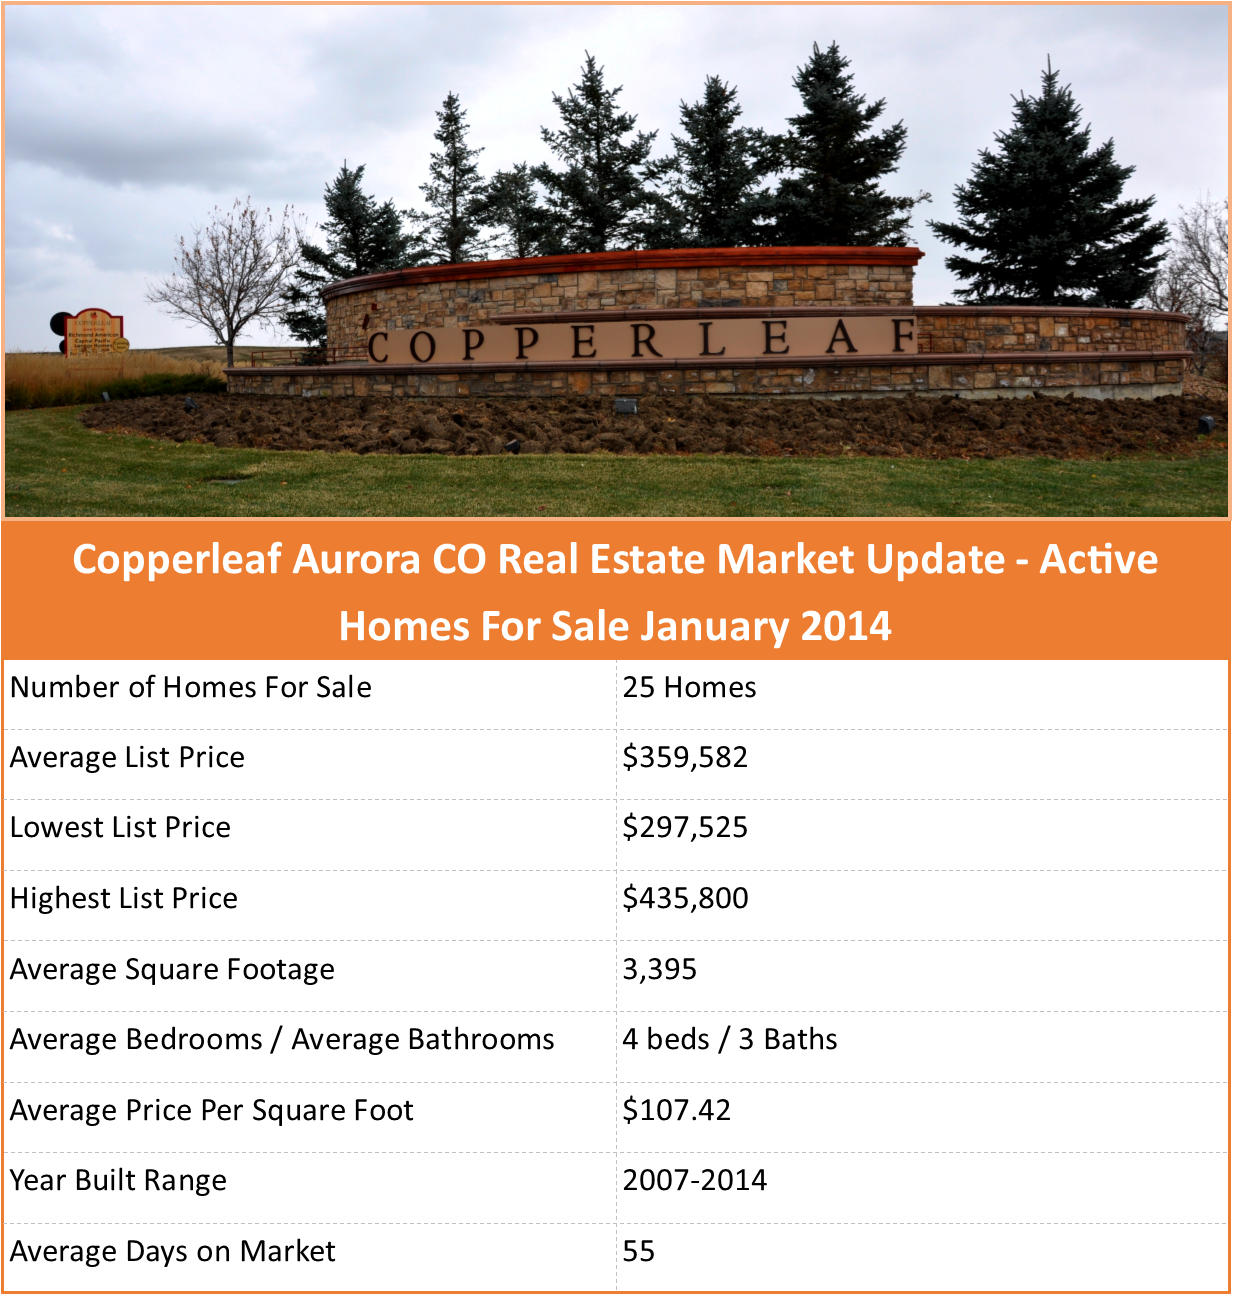 copperleaf aurora co market update homes for sale as of january 2014